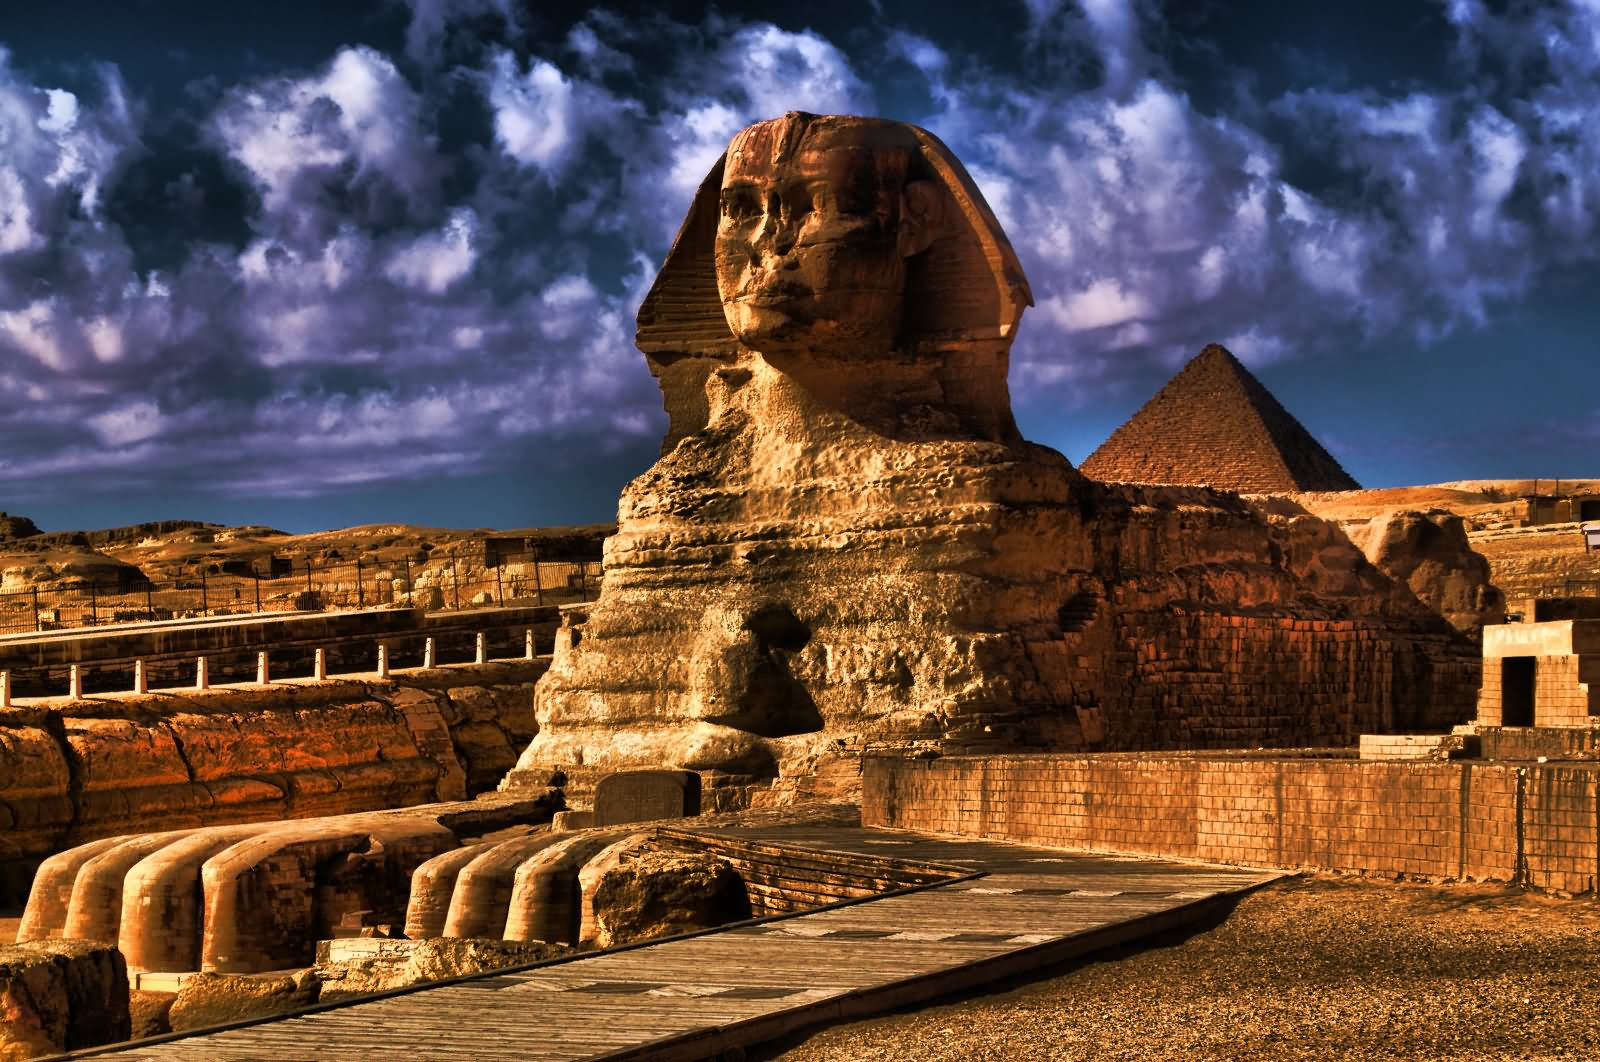 The Great Sphinx of Giza Looks Amazing Picture